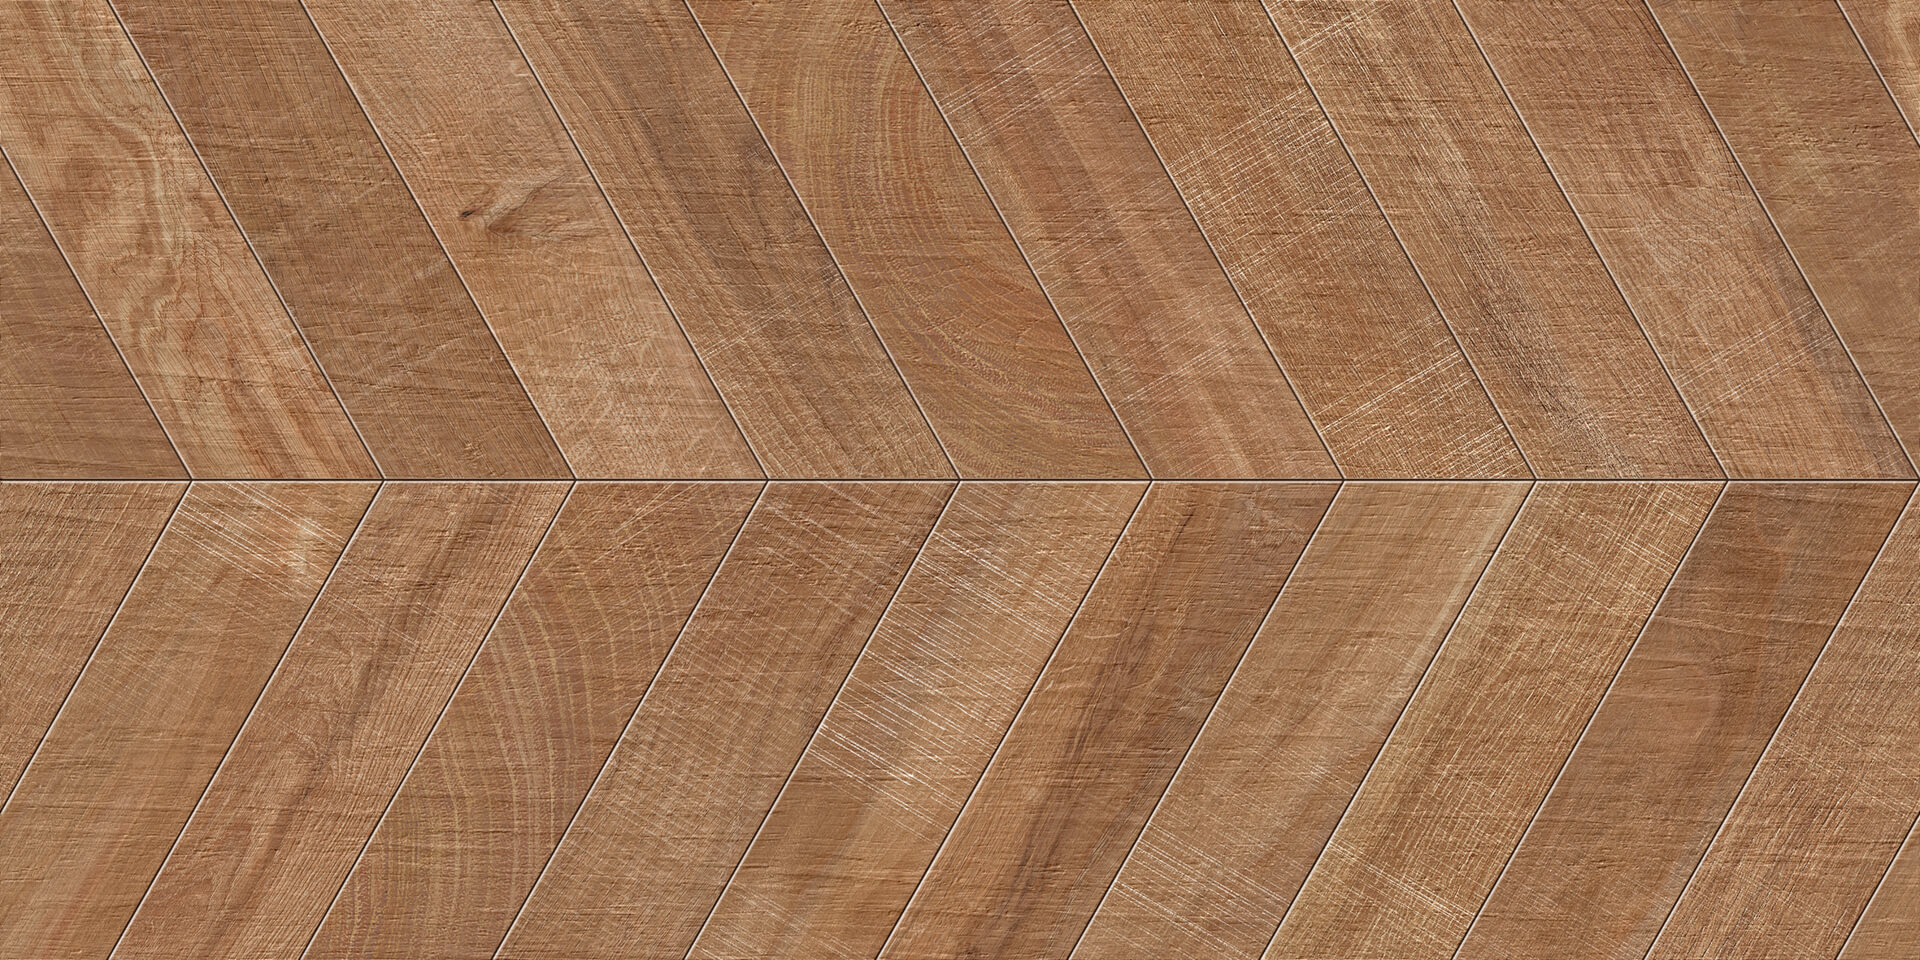 Artwood Chevron Nut 120x60